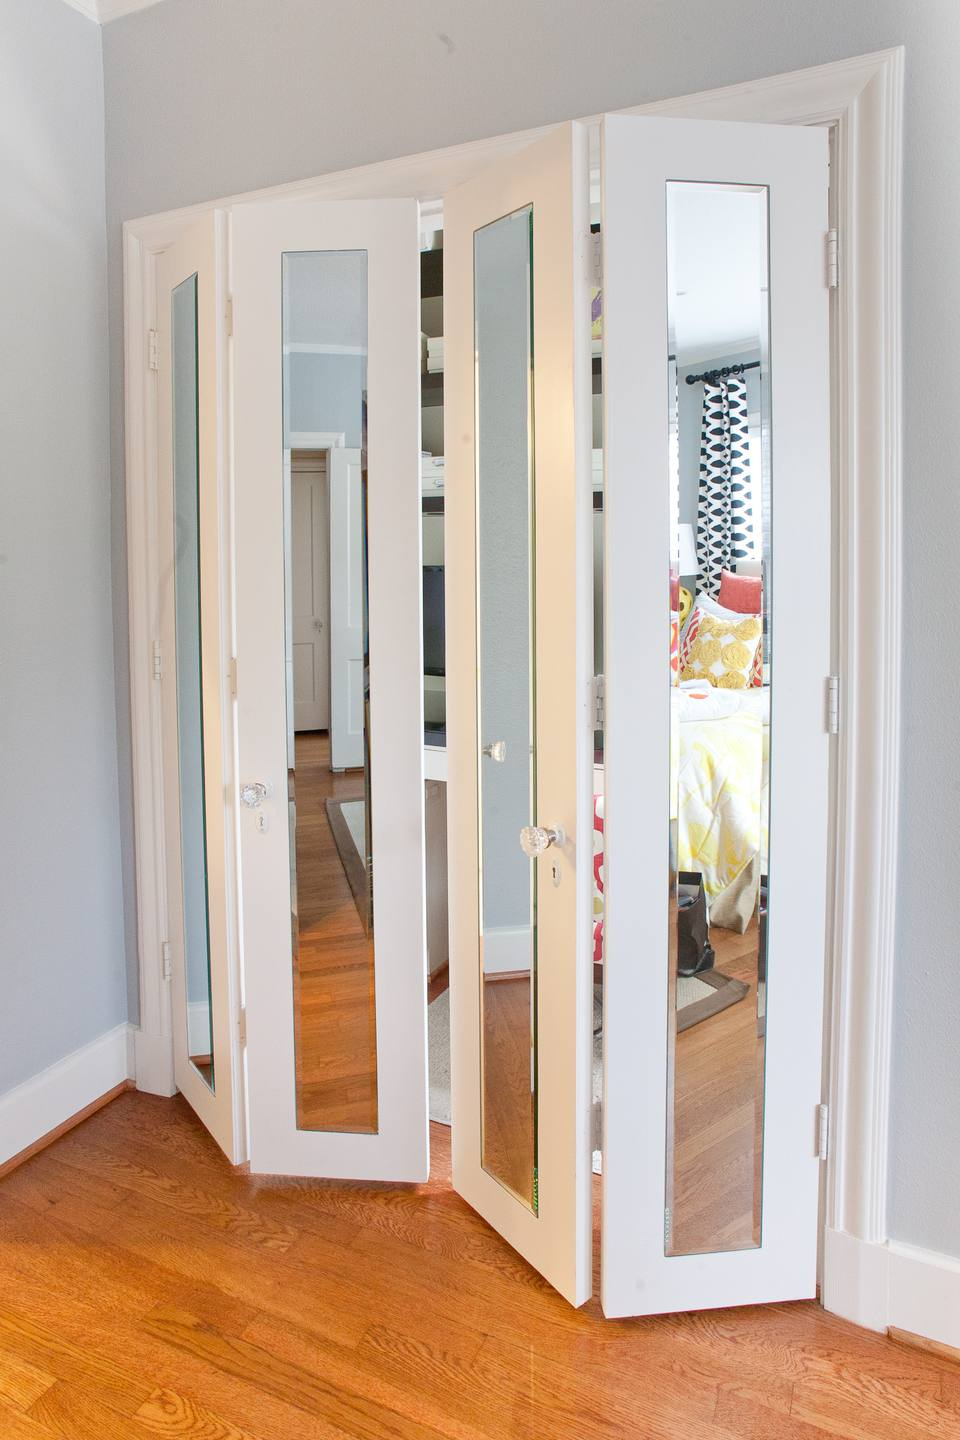 Here are some five great ideas used by talented designers, homeowners, and renters to help solve your closet design challenges.